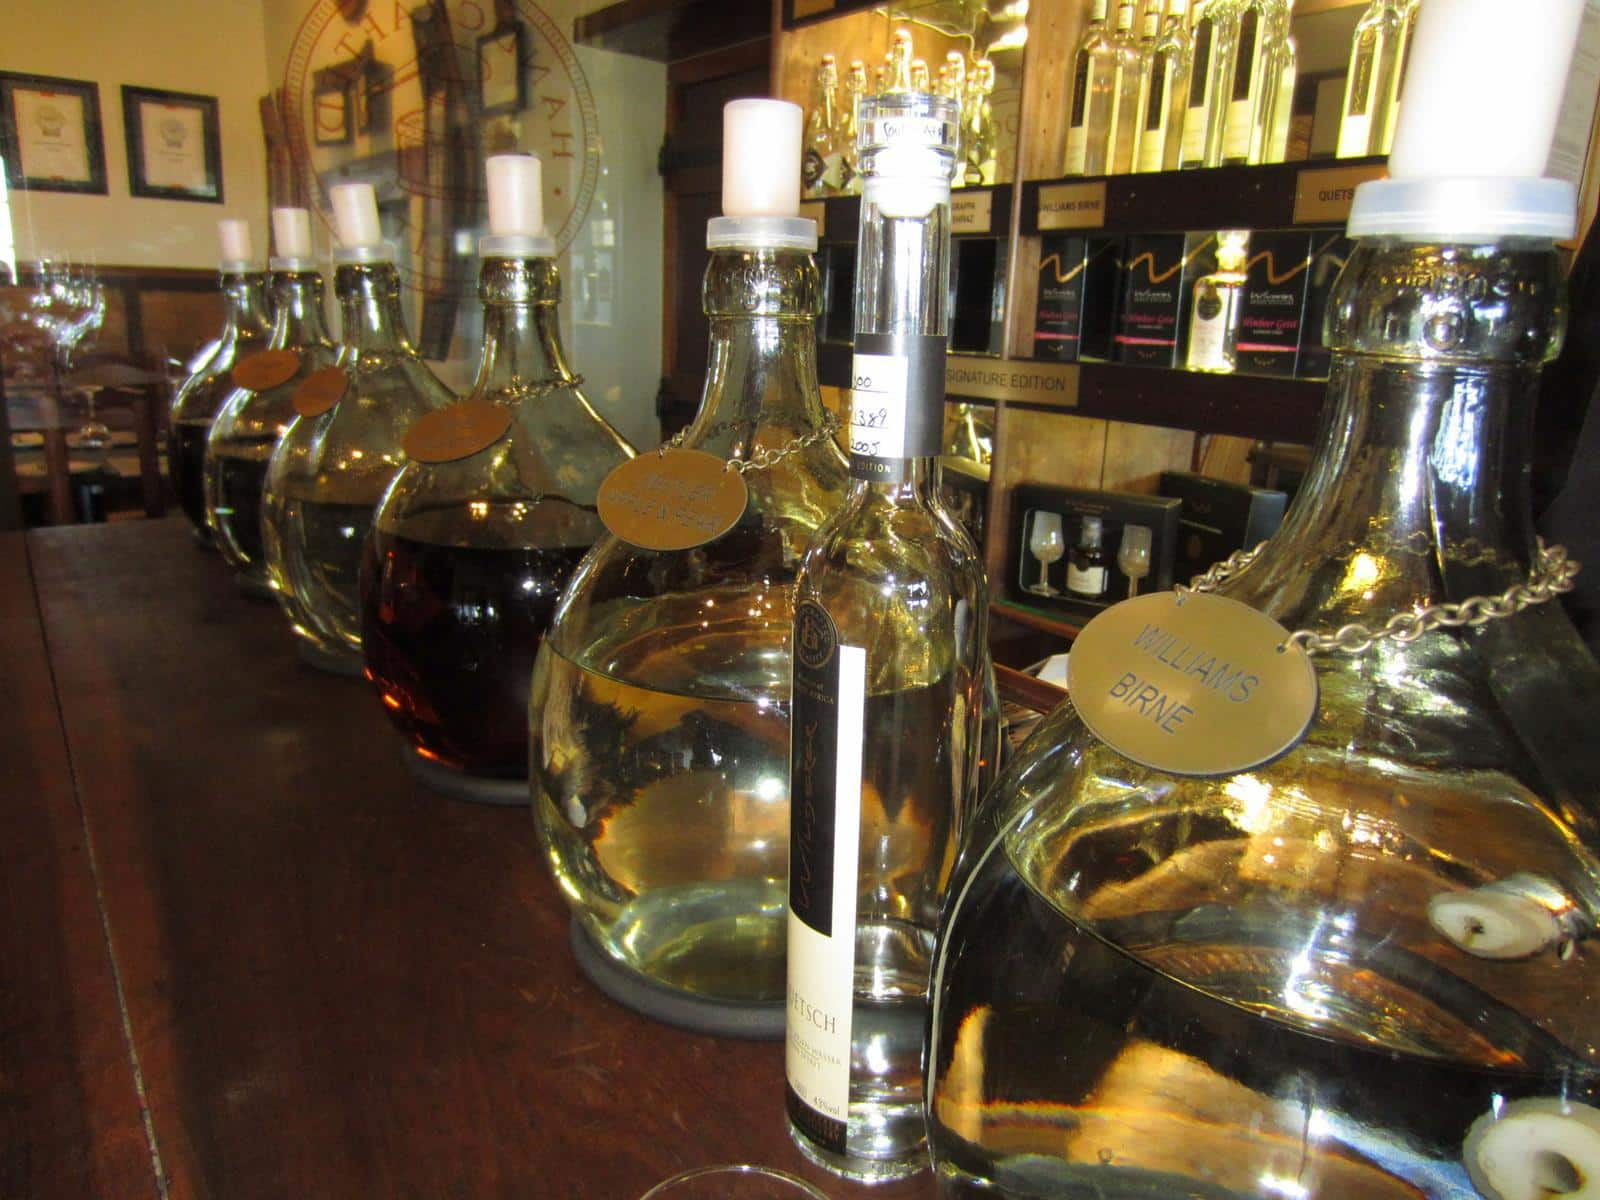 Fine grappa and eau de vie on taste.